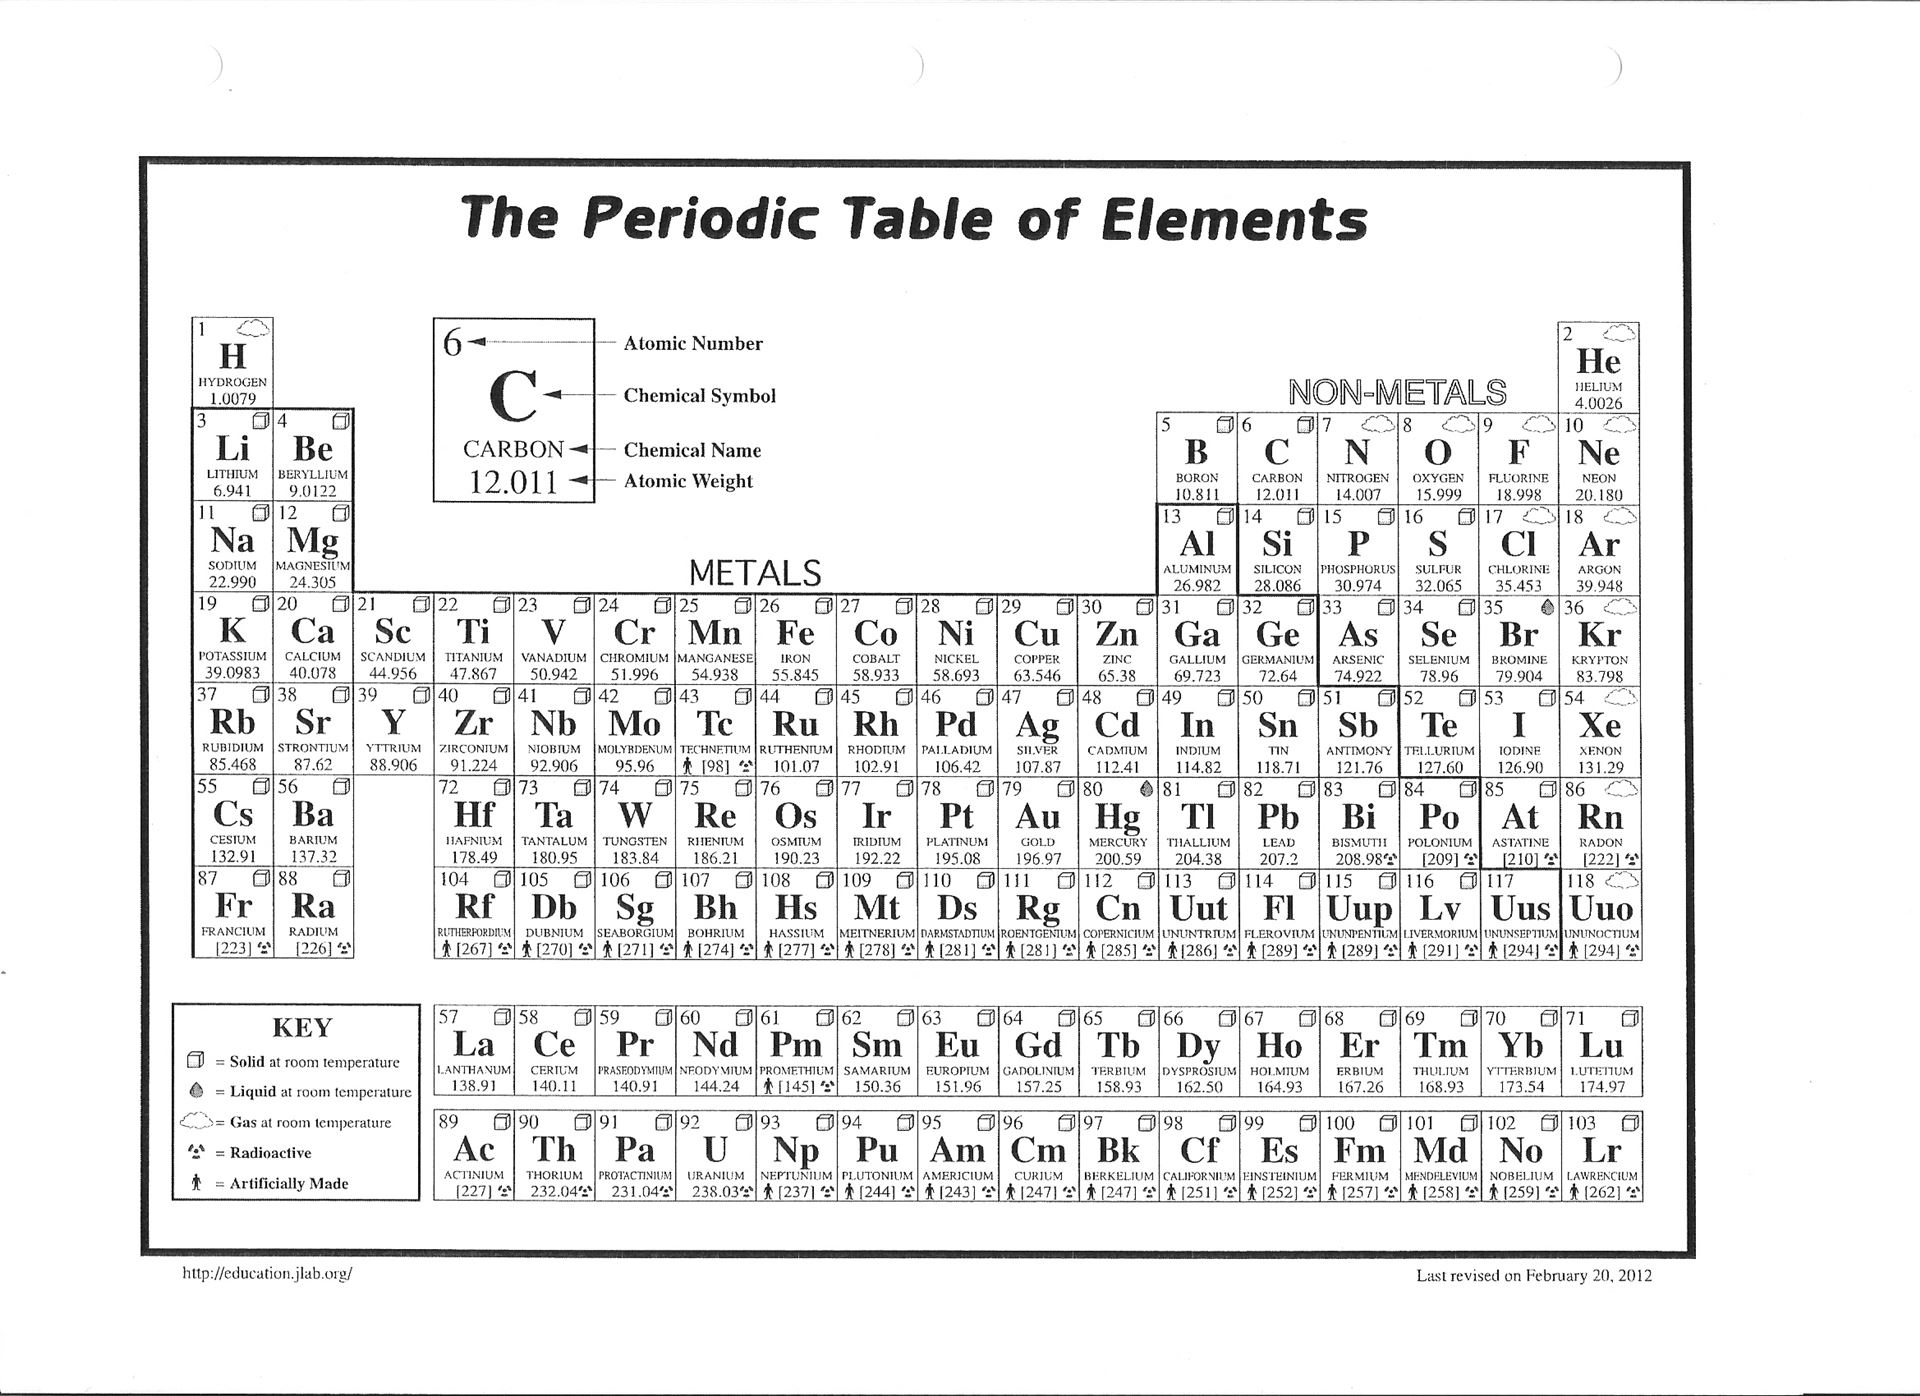 Blank Periodic Table 2 338 1 700 Pixels With Images